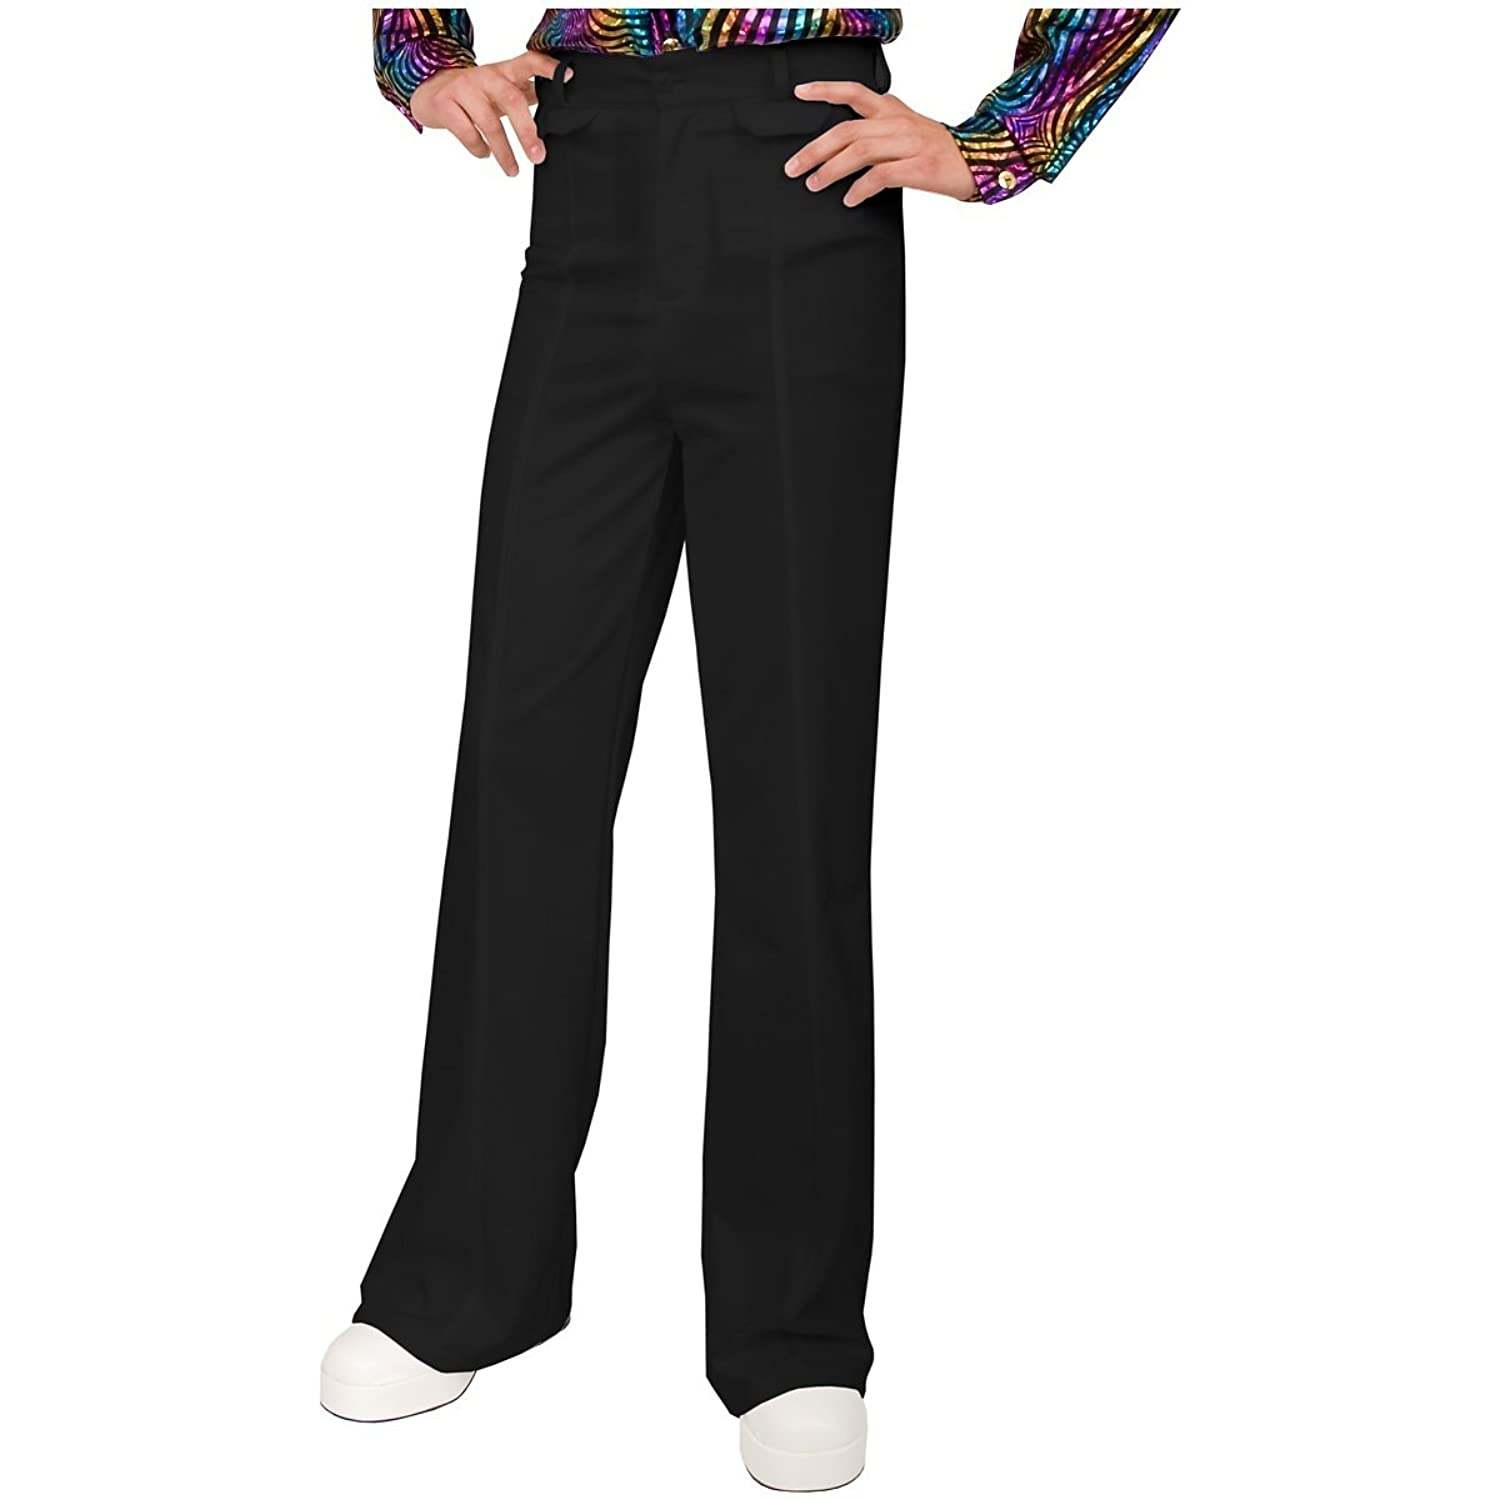 66cb1b6c43eca These 70s style pants for are available in black, powder blue, turquoise,  lime, orange, purple, red, yellow or white.